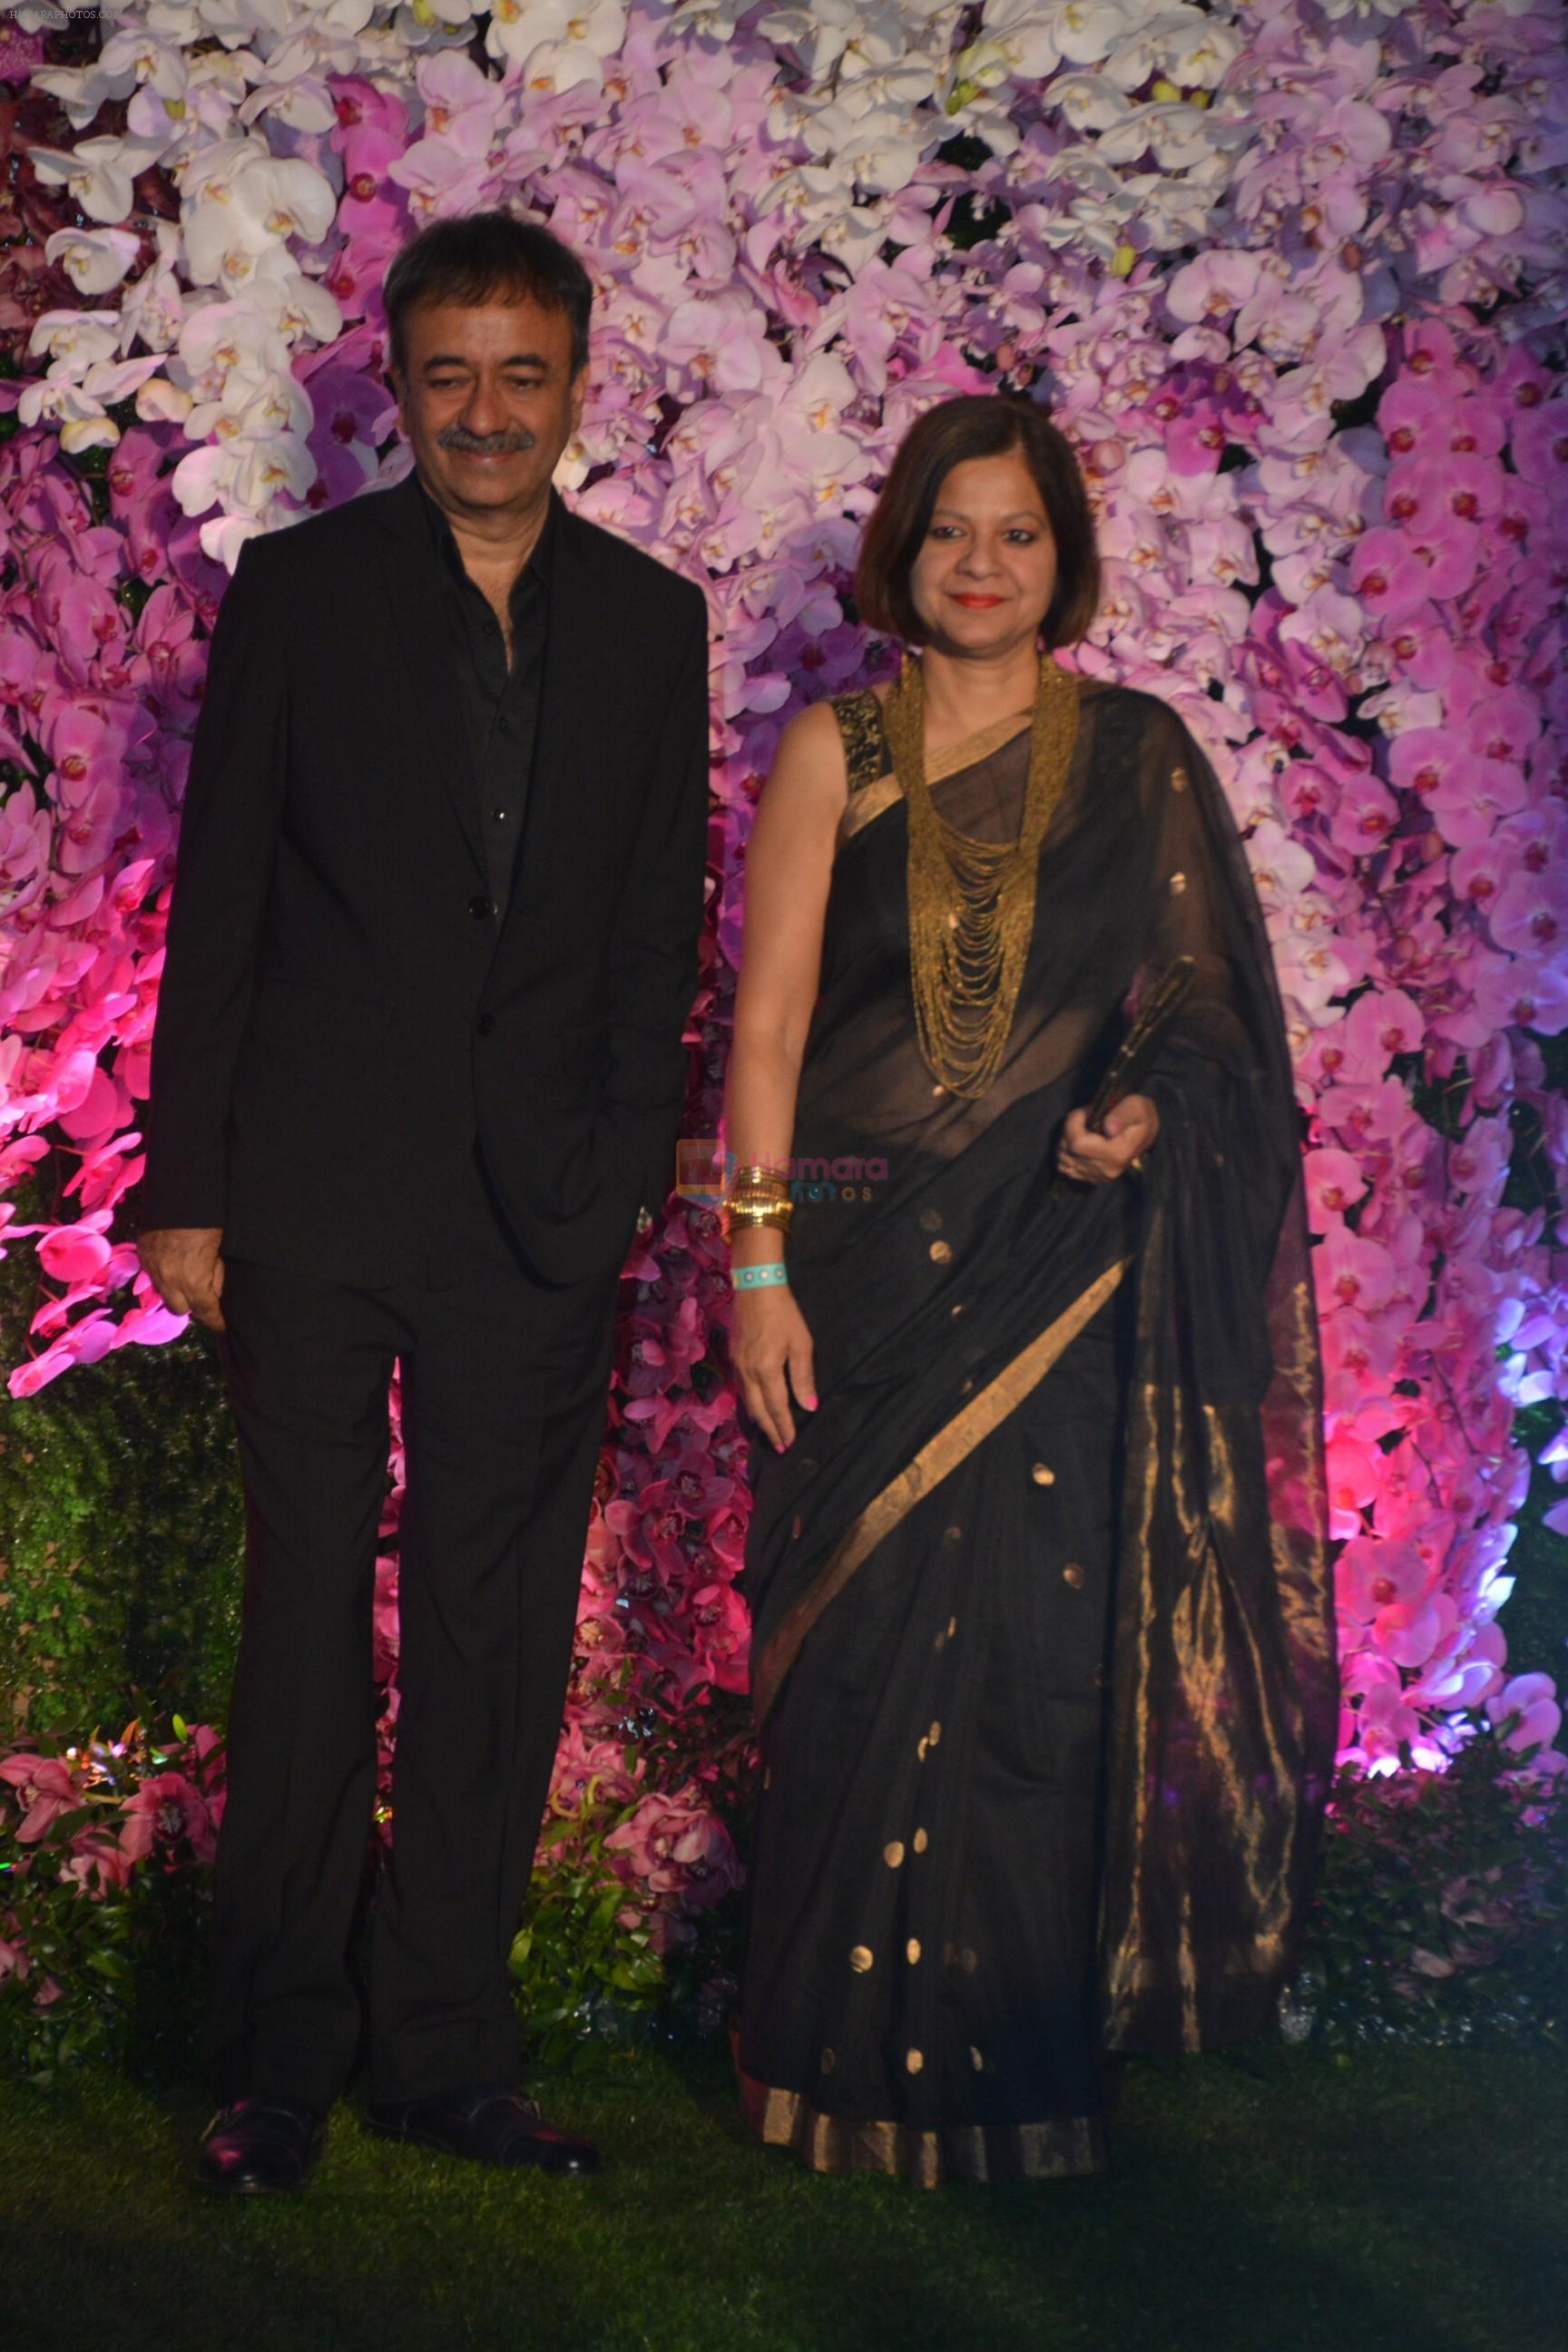 Rajkumar Hirani at Akash Ambani & Shloka Mehta wedding in Jio World Centre bkc on 10th March 2019